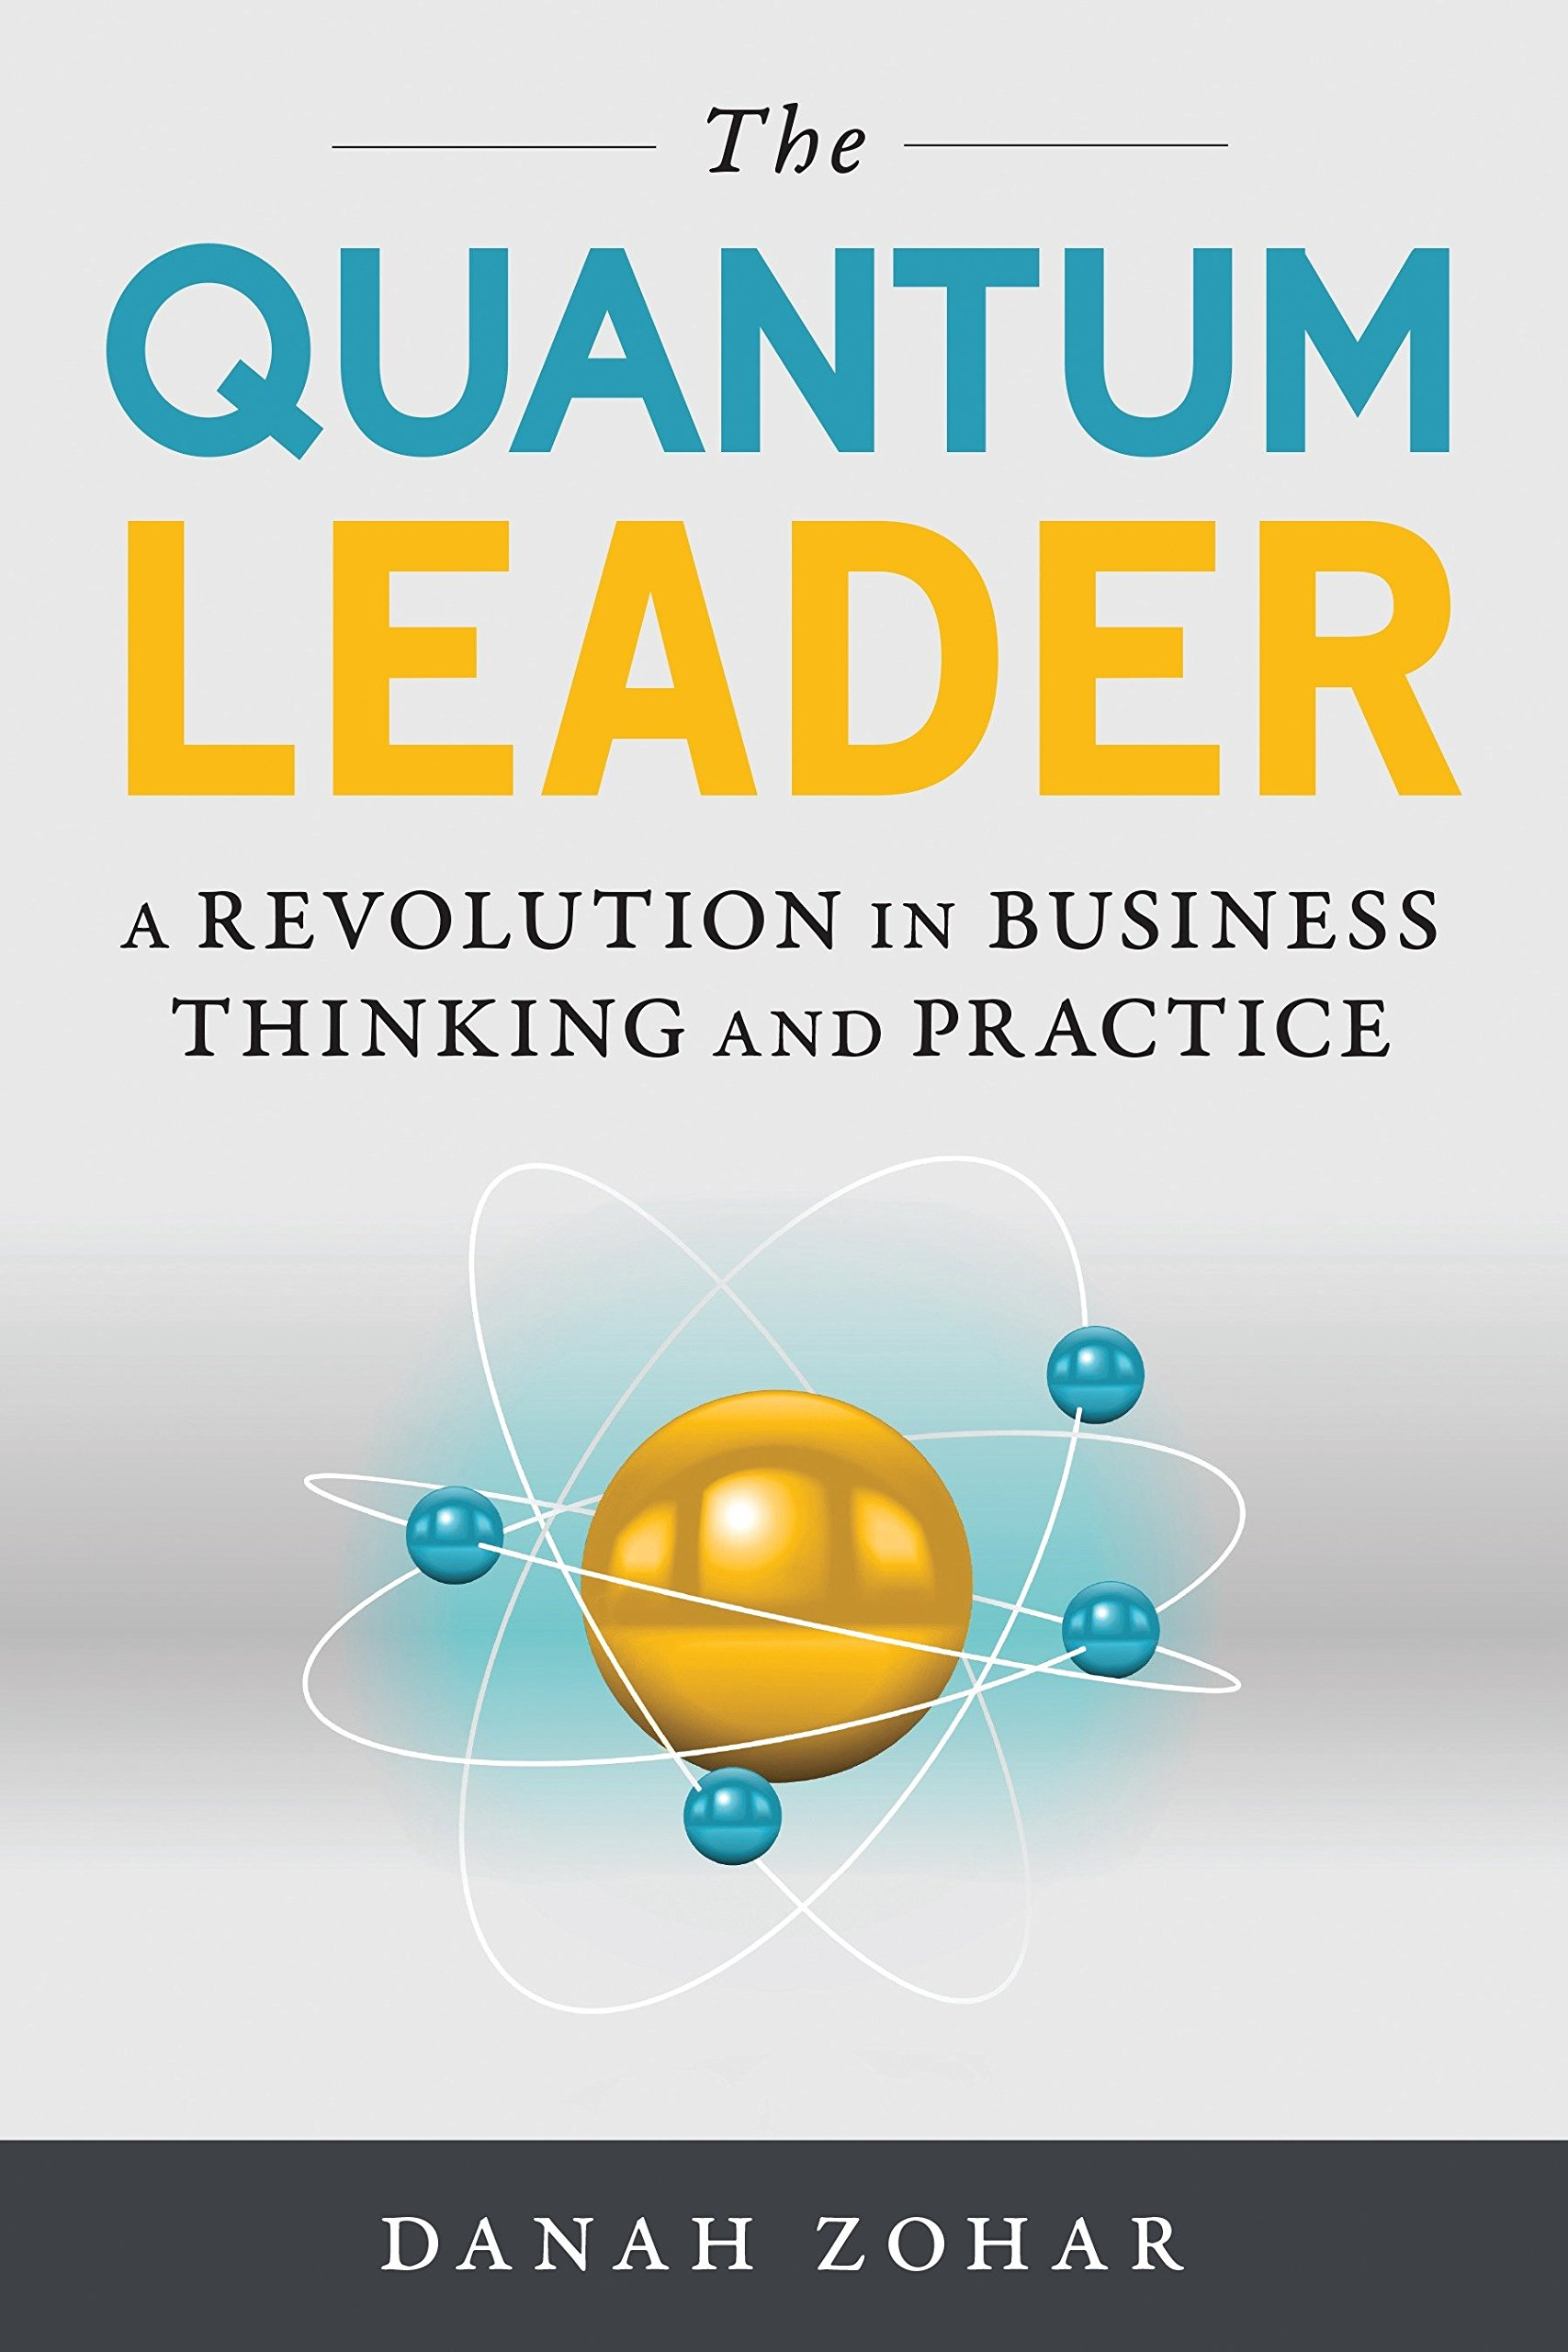 The quantum leader a revolution in business thinking and practice the quantum leader a revolution in business thinking and practice danah zohar 9781633882416 amazon books fandeluxe Images